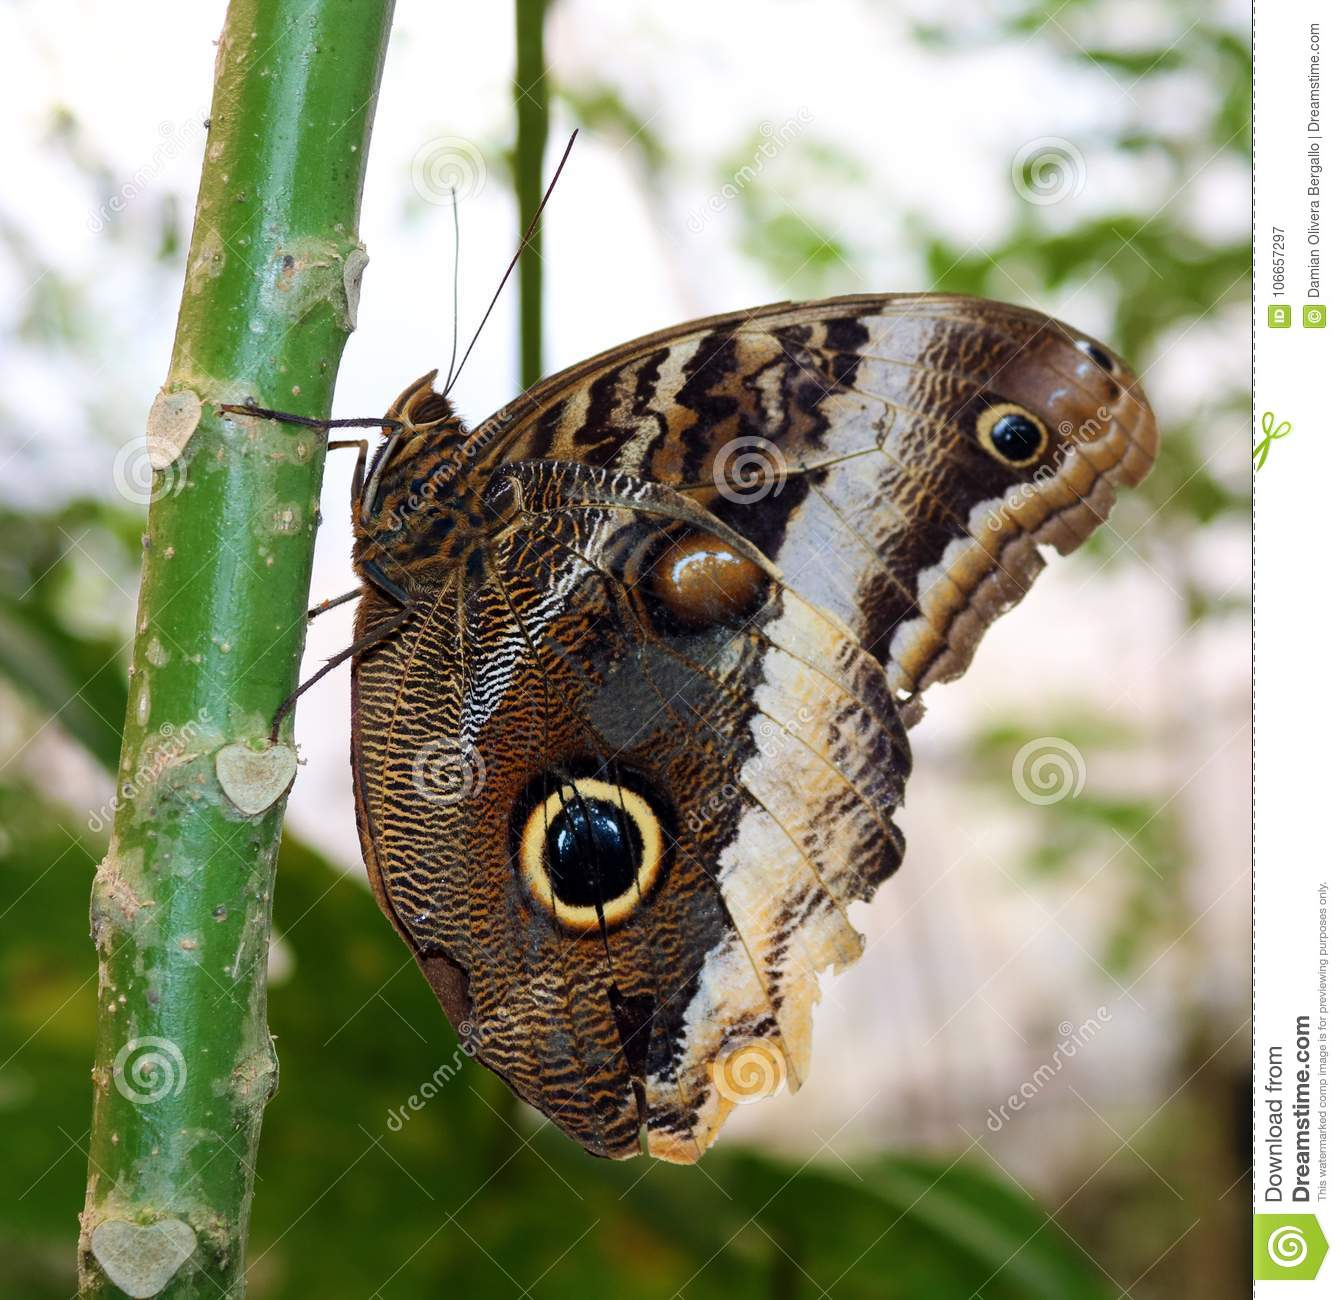 The Owl Butterfly in Costa Rica mariposa naranja